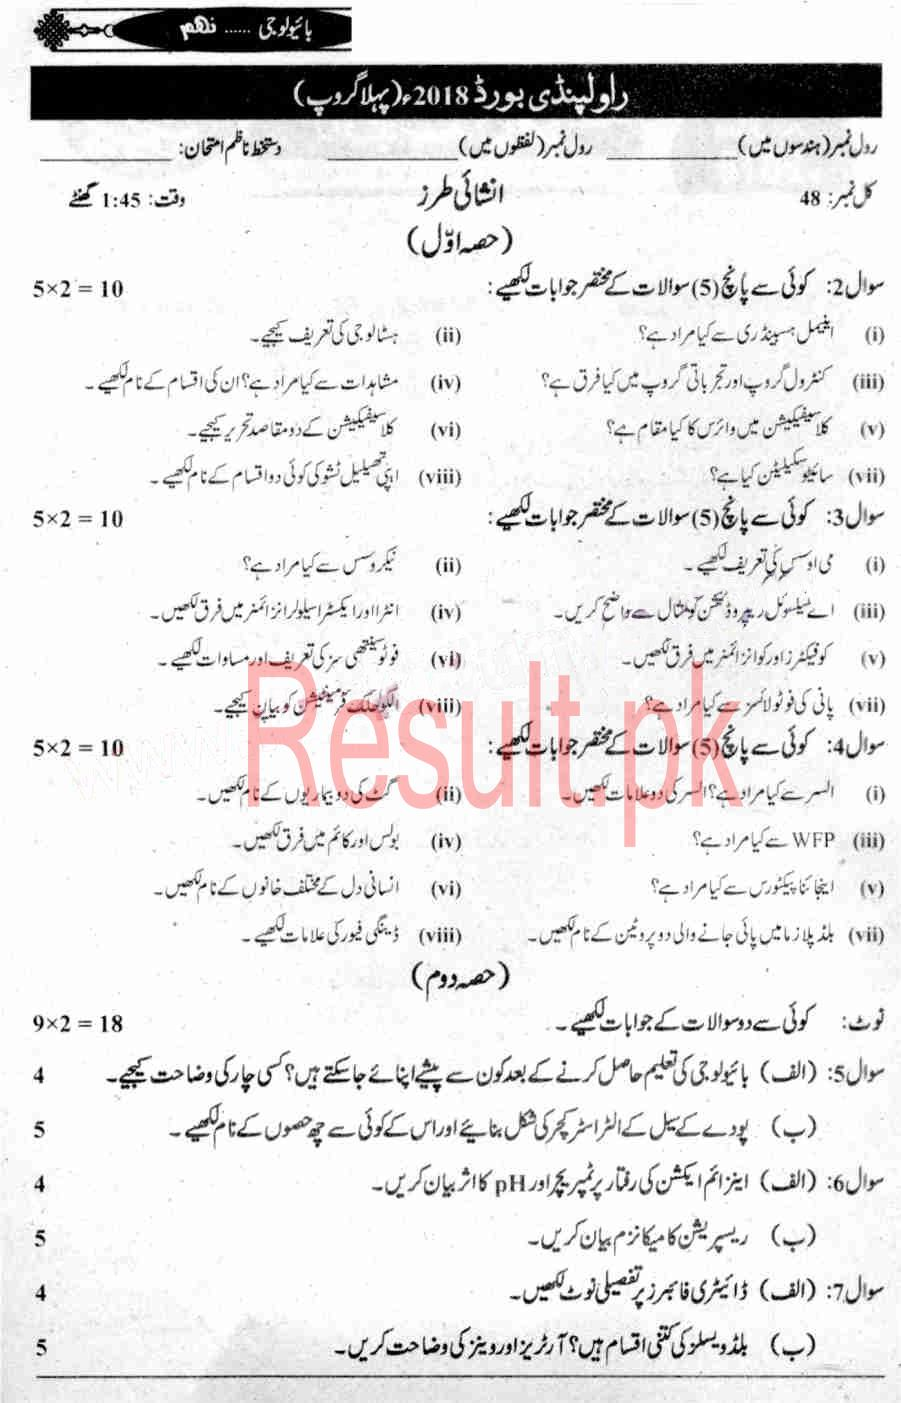 BISE Rawalpindi Board Past Papers 2019 Matric, SSC Part 1 & 2, 9th